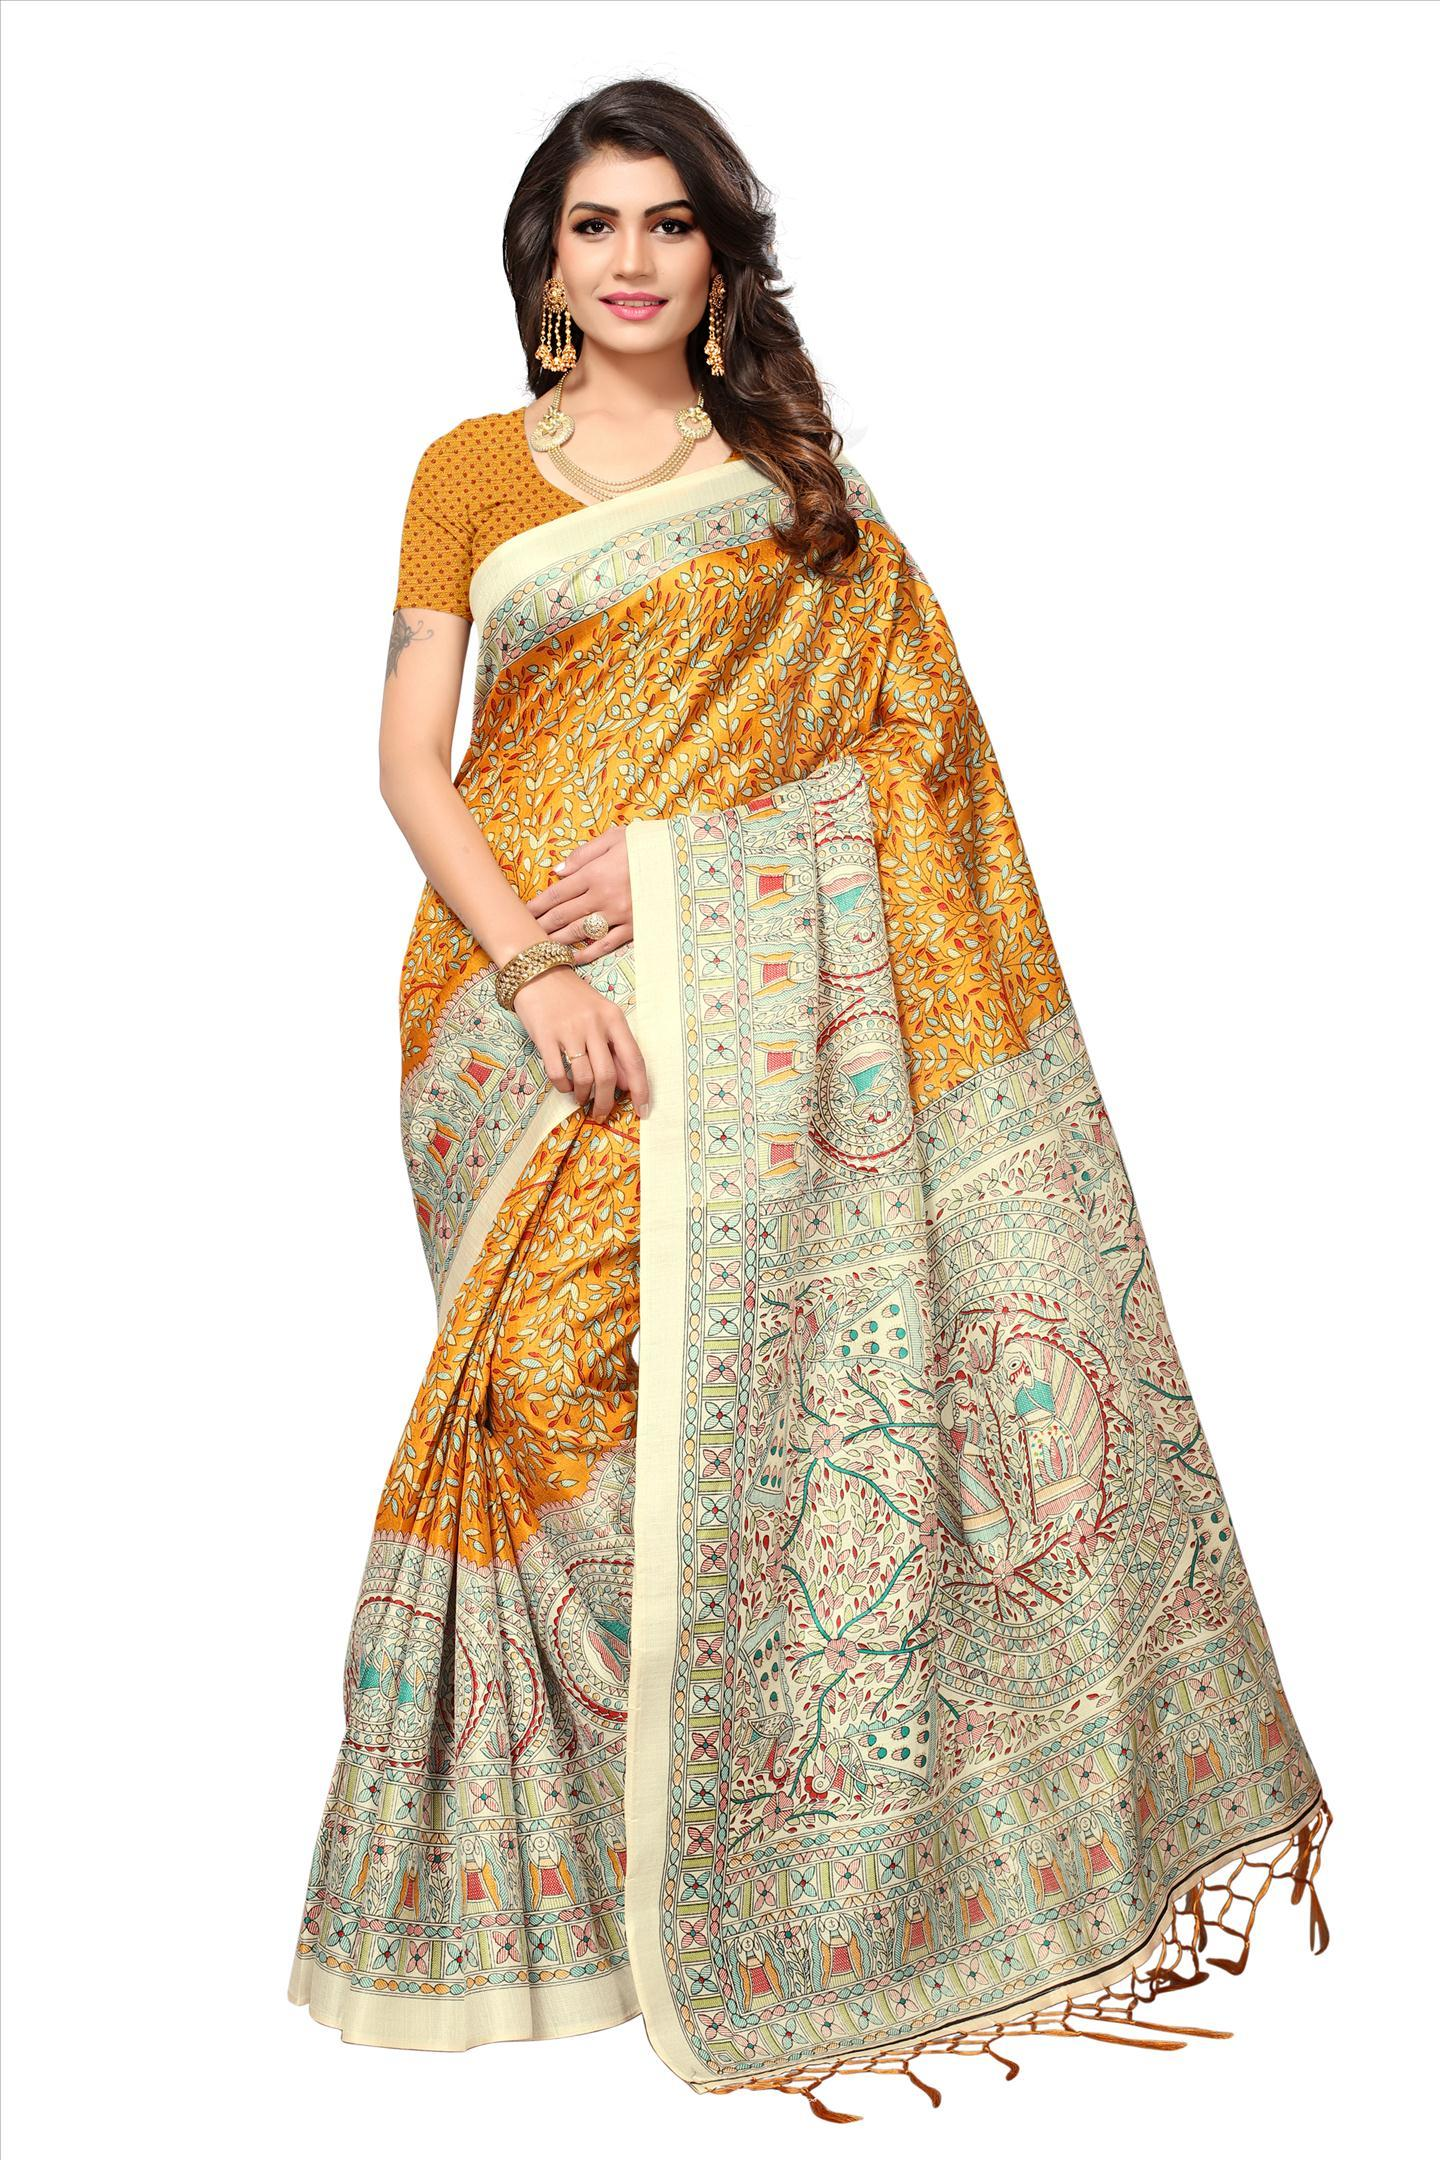 Fancy SIlk Saree with Butterfly Design